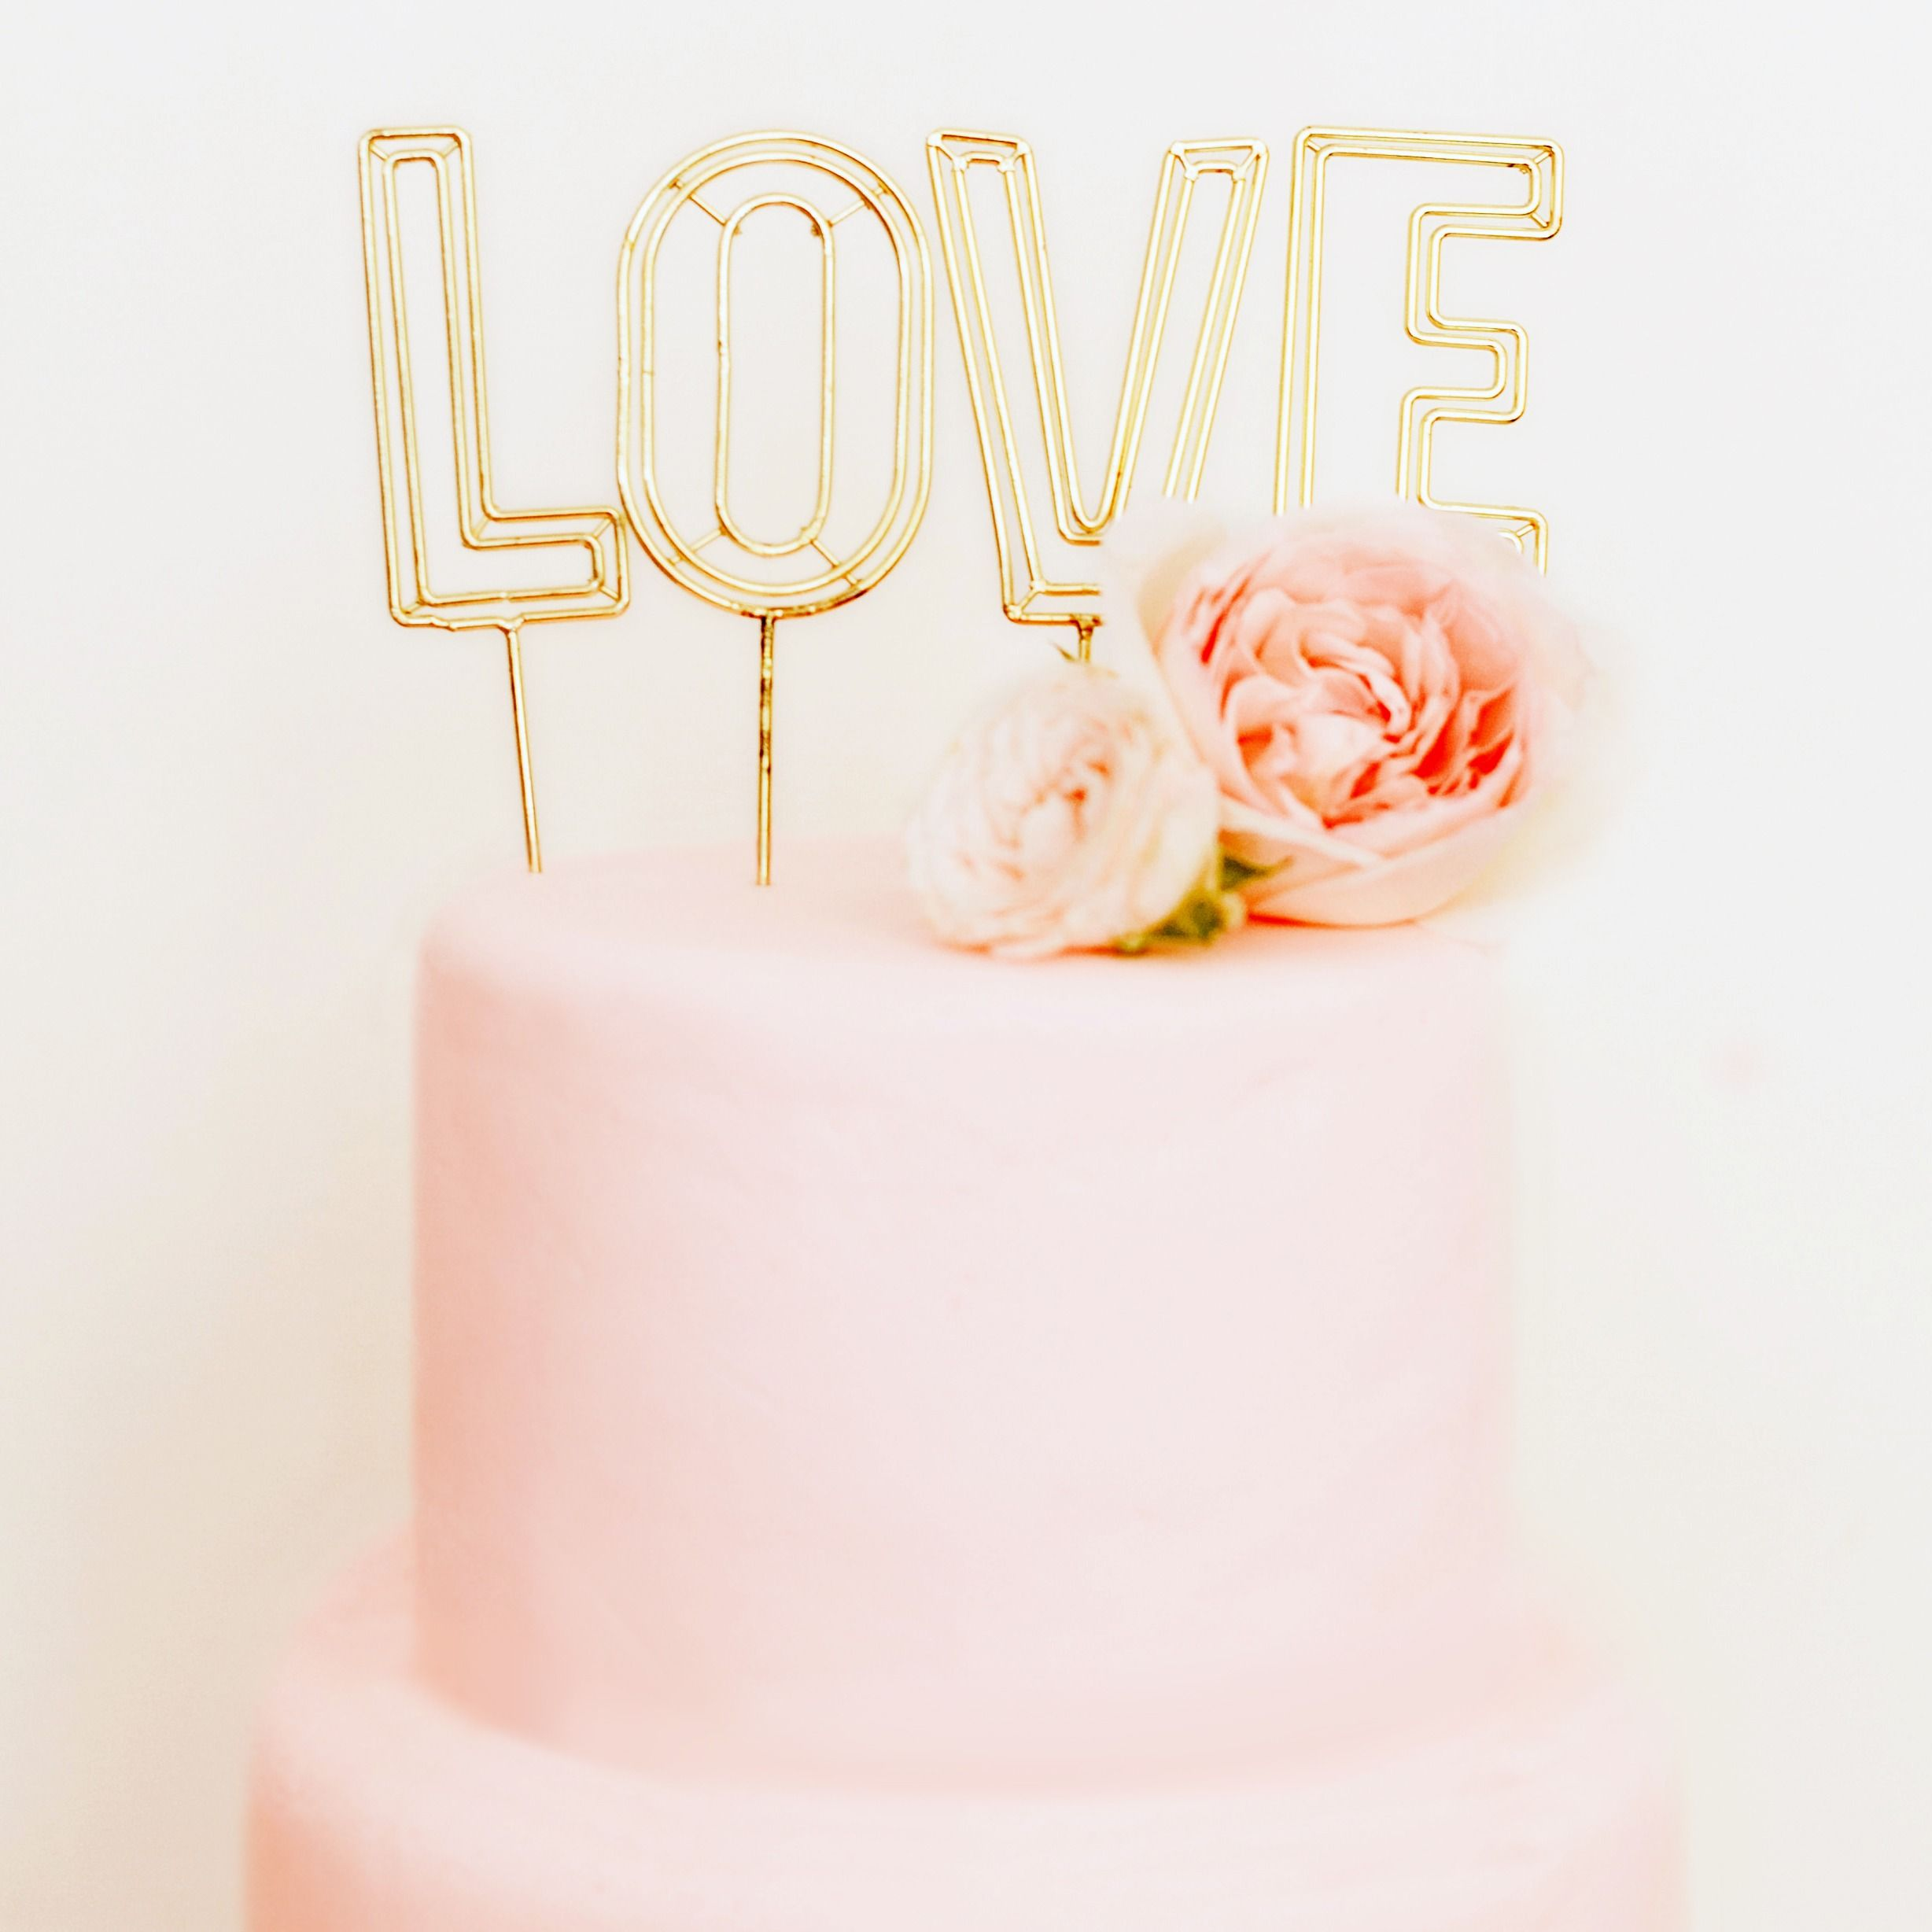 Style Me Pretty Love Lettering Cake Toppers Gold Cake Topper Edible Glitter Dust Cake Toppers